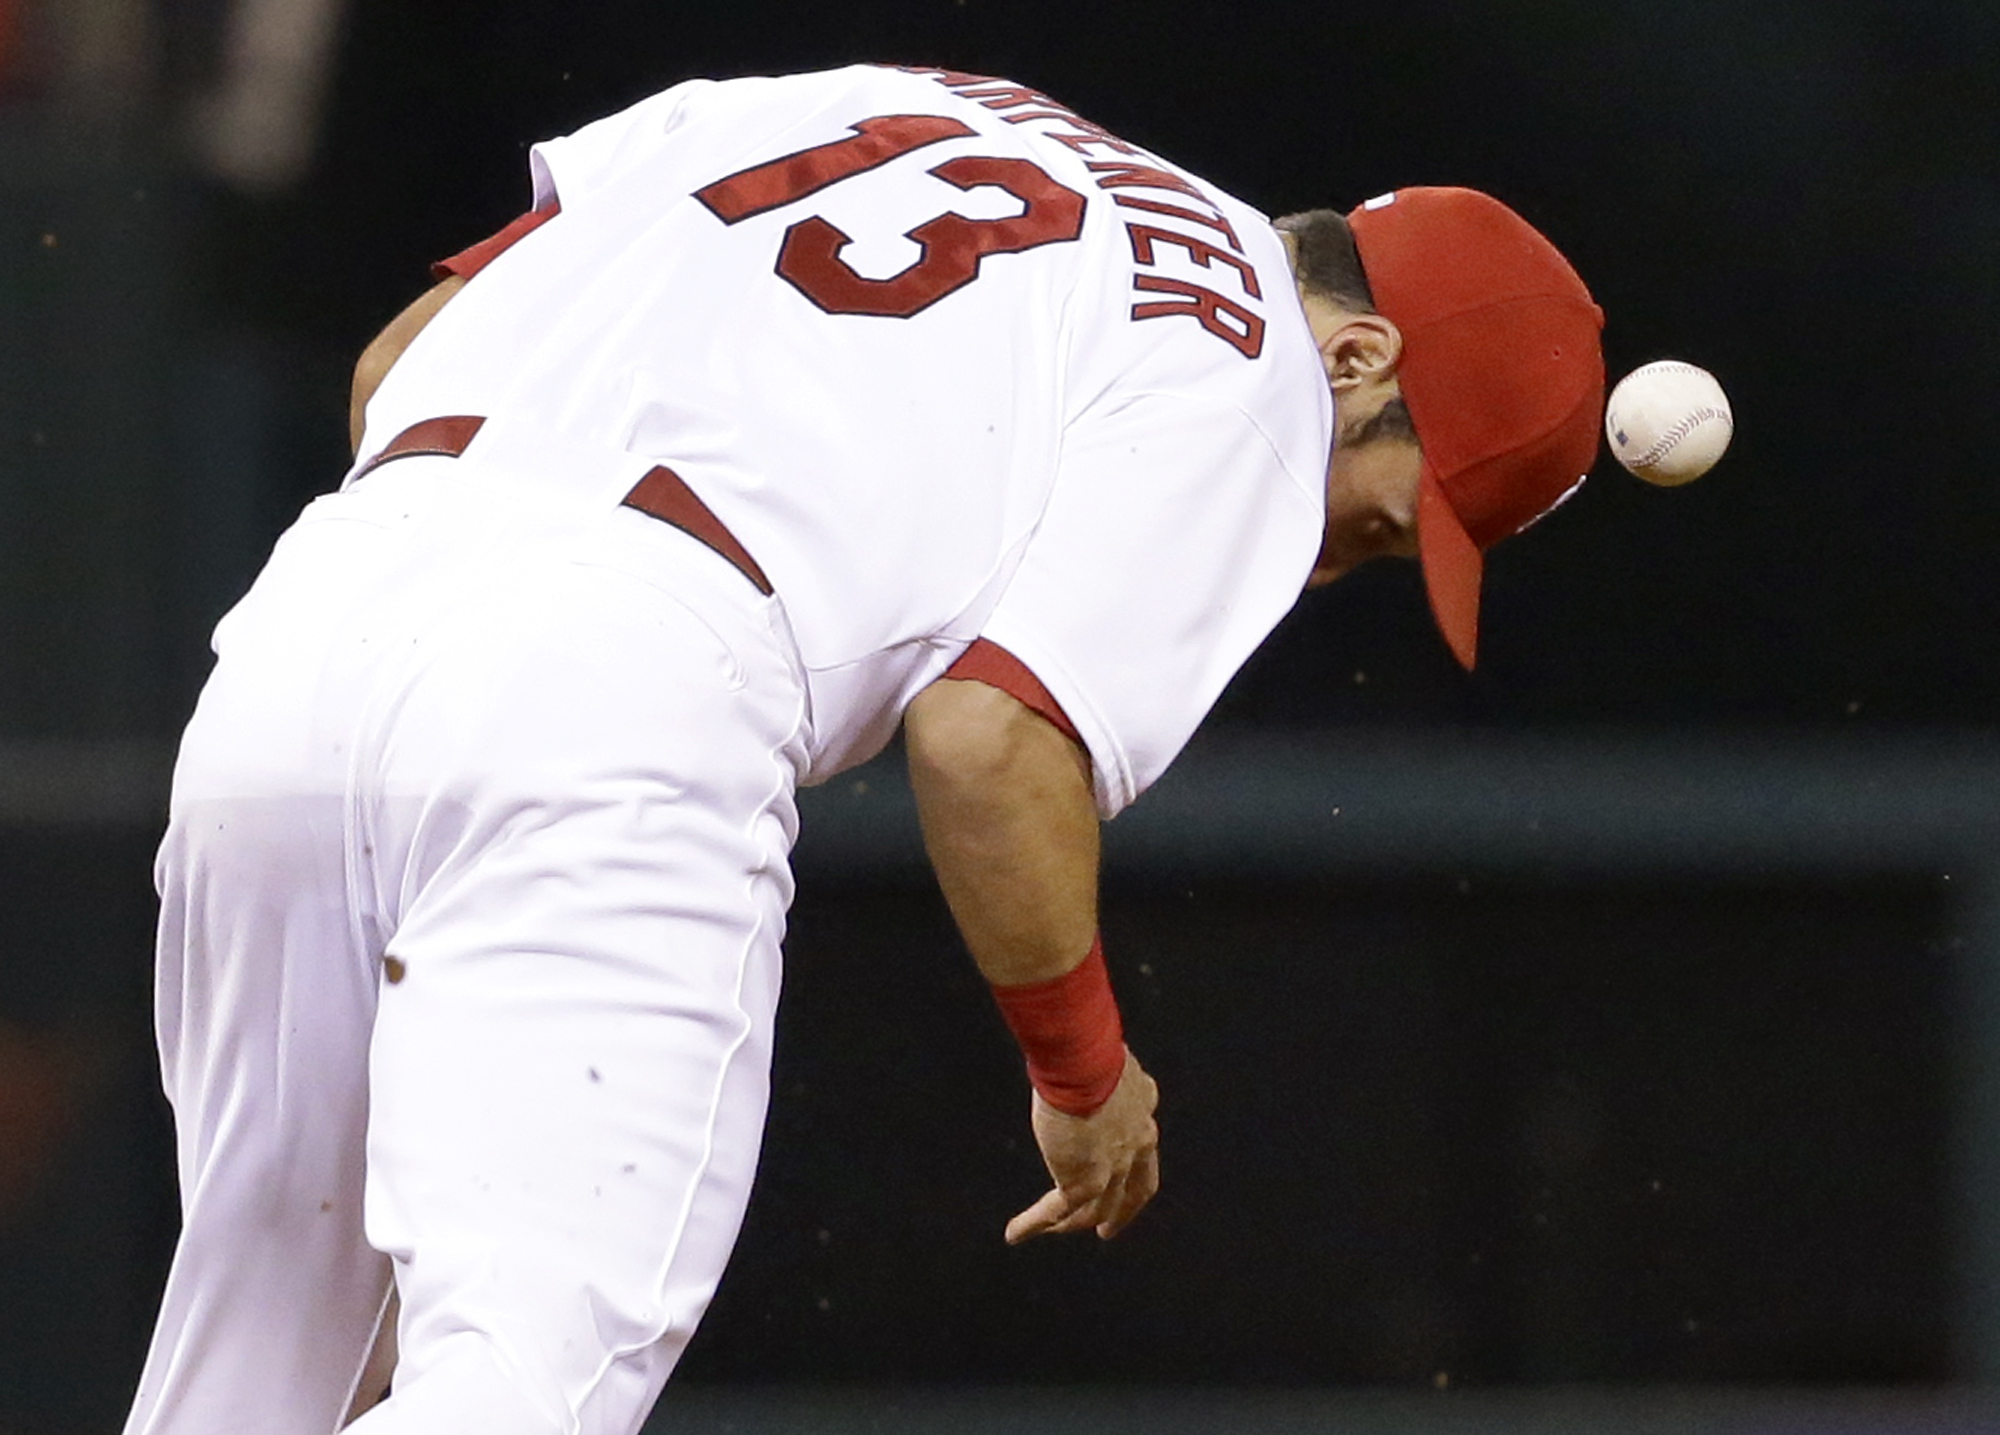 A ball hit for a single by Cincinnati Reds' Joey Votto bounces away from St. Louis Cardinals second baseman Matt Carpenter after it was deflected by Carpenter during the fourth inning of a baseball game on Wednesday, Sept. 23, 2015, in St. Louis. (AP Phot